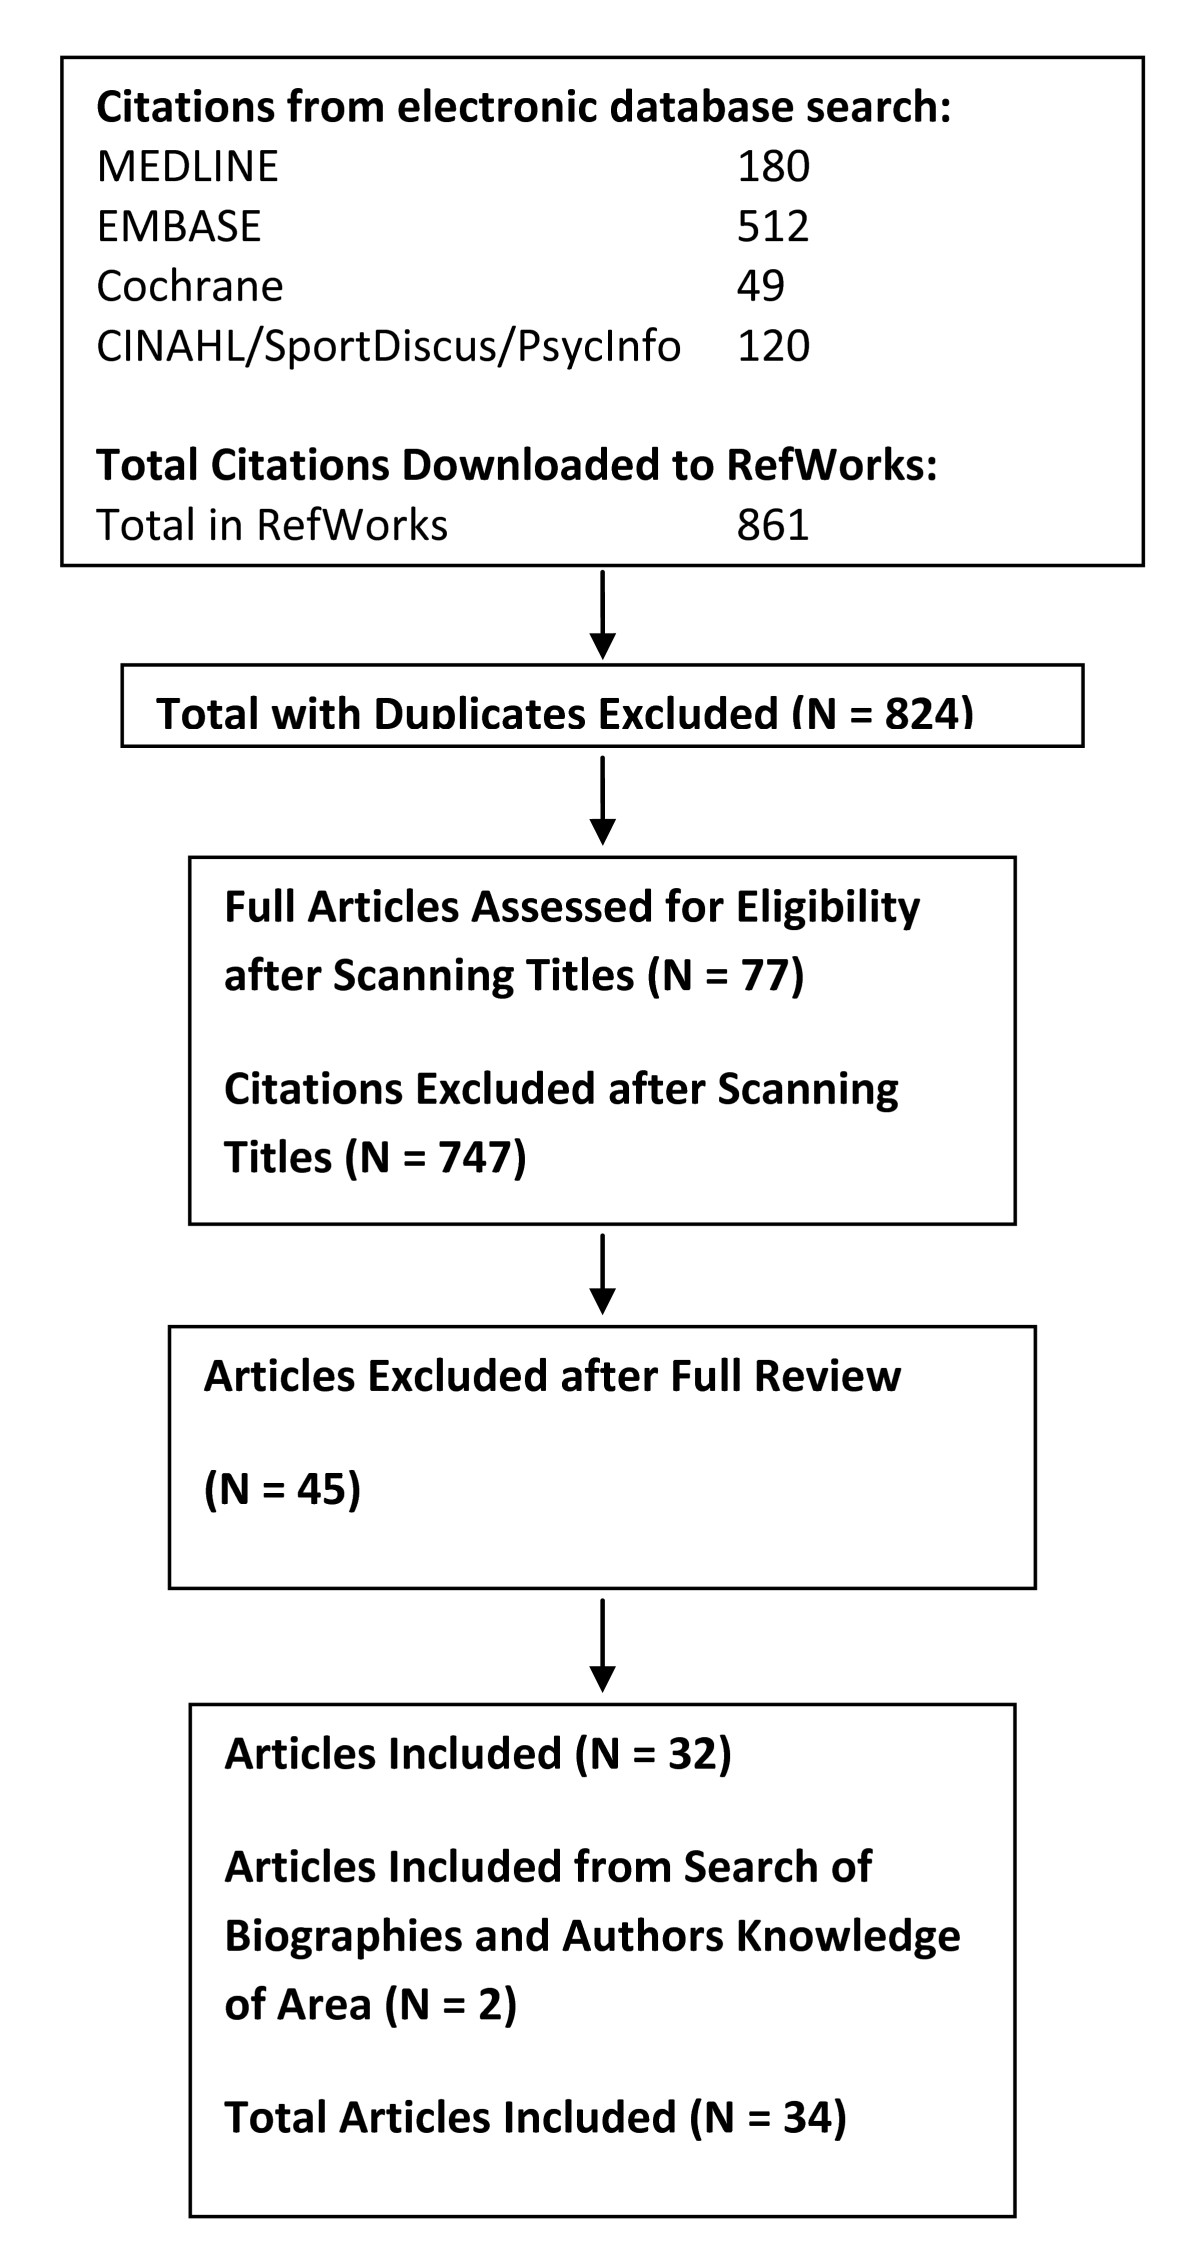 http://static-content.springer.com/image/art%3A10.1186%2F1479-5868-7-38/MediaObjects/12966_2009_Article_344_Fig4_HTML.jpg